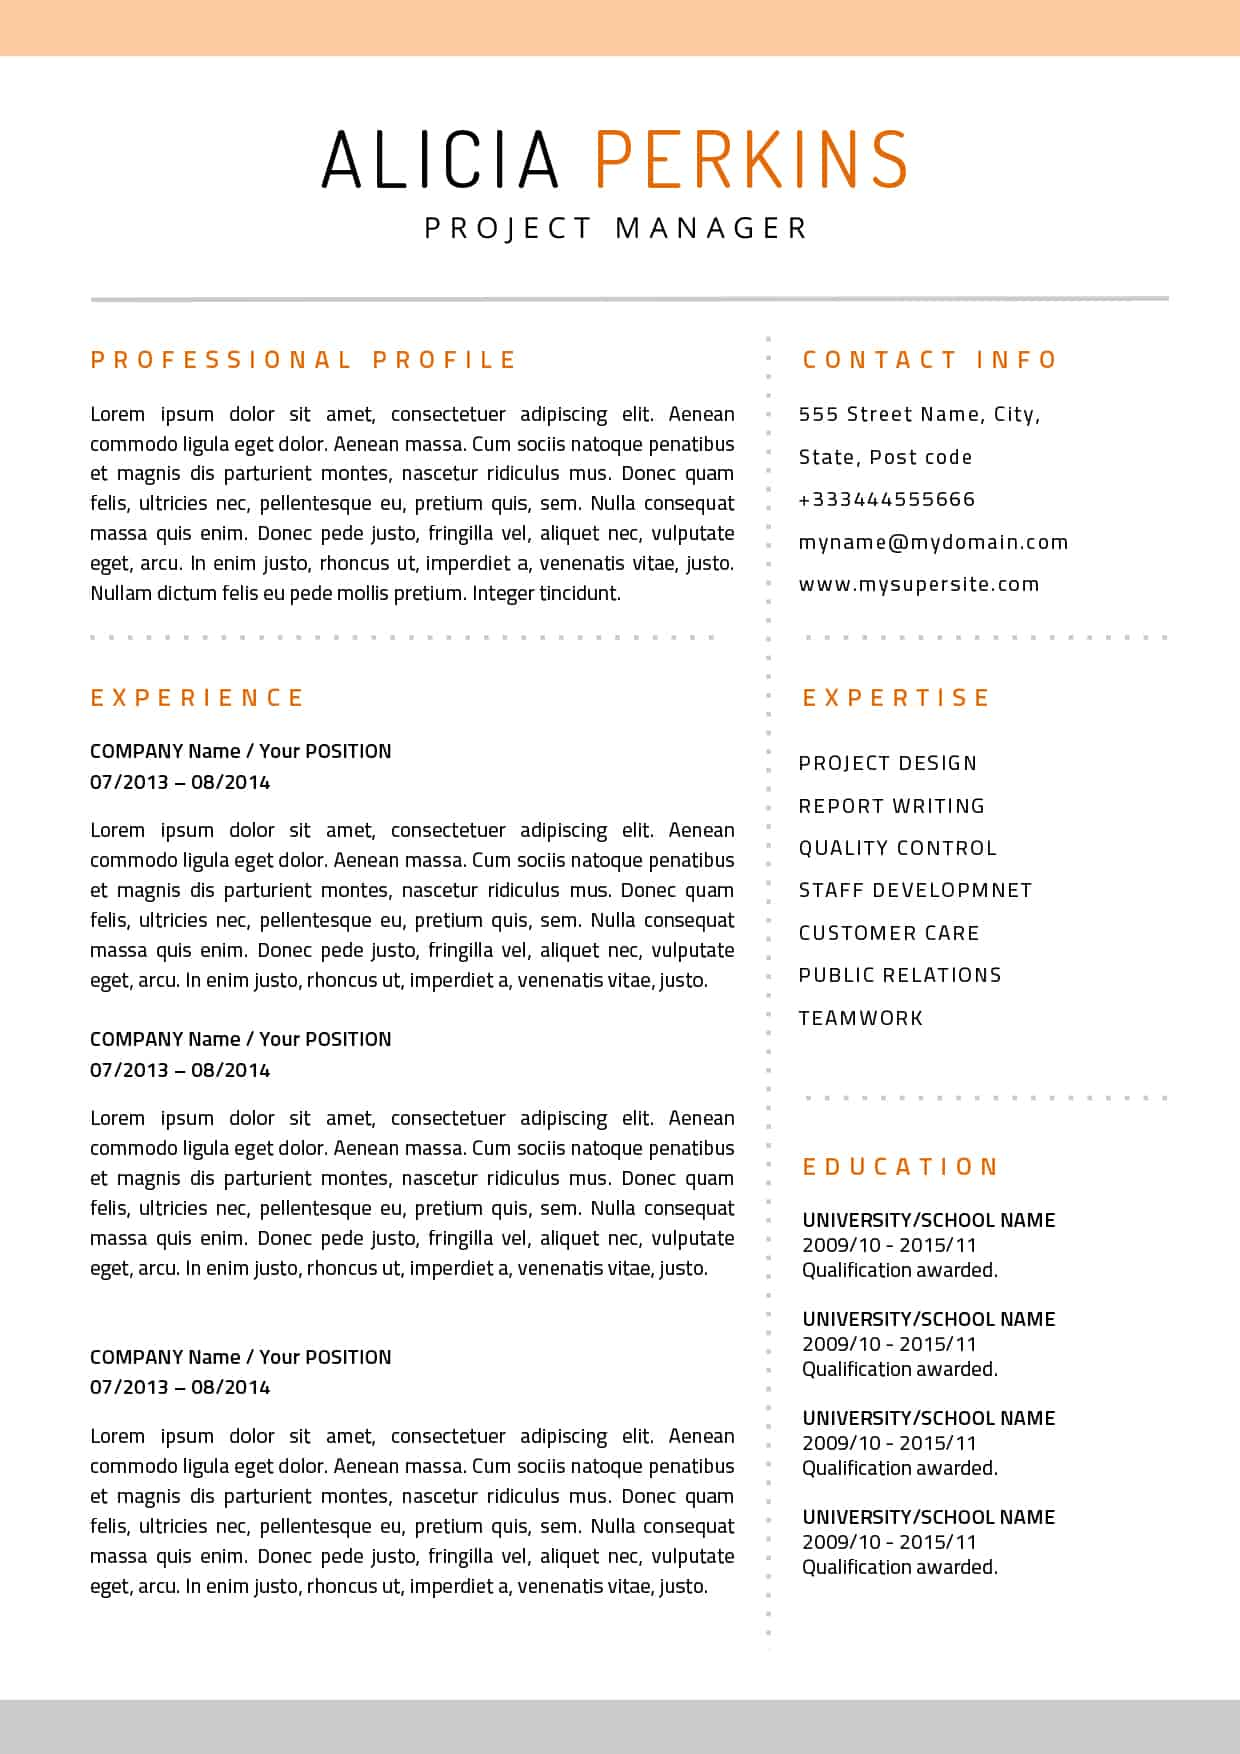 apple pages resume on etsy - Resume Template For Mac